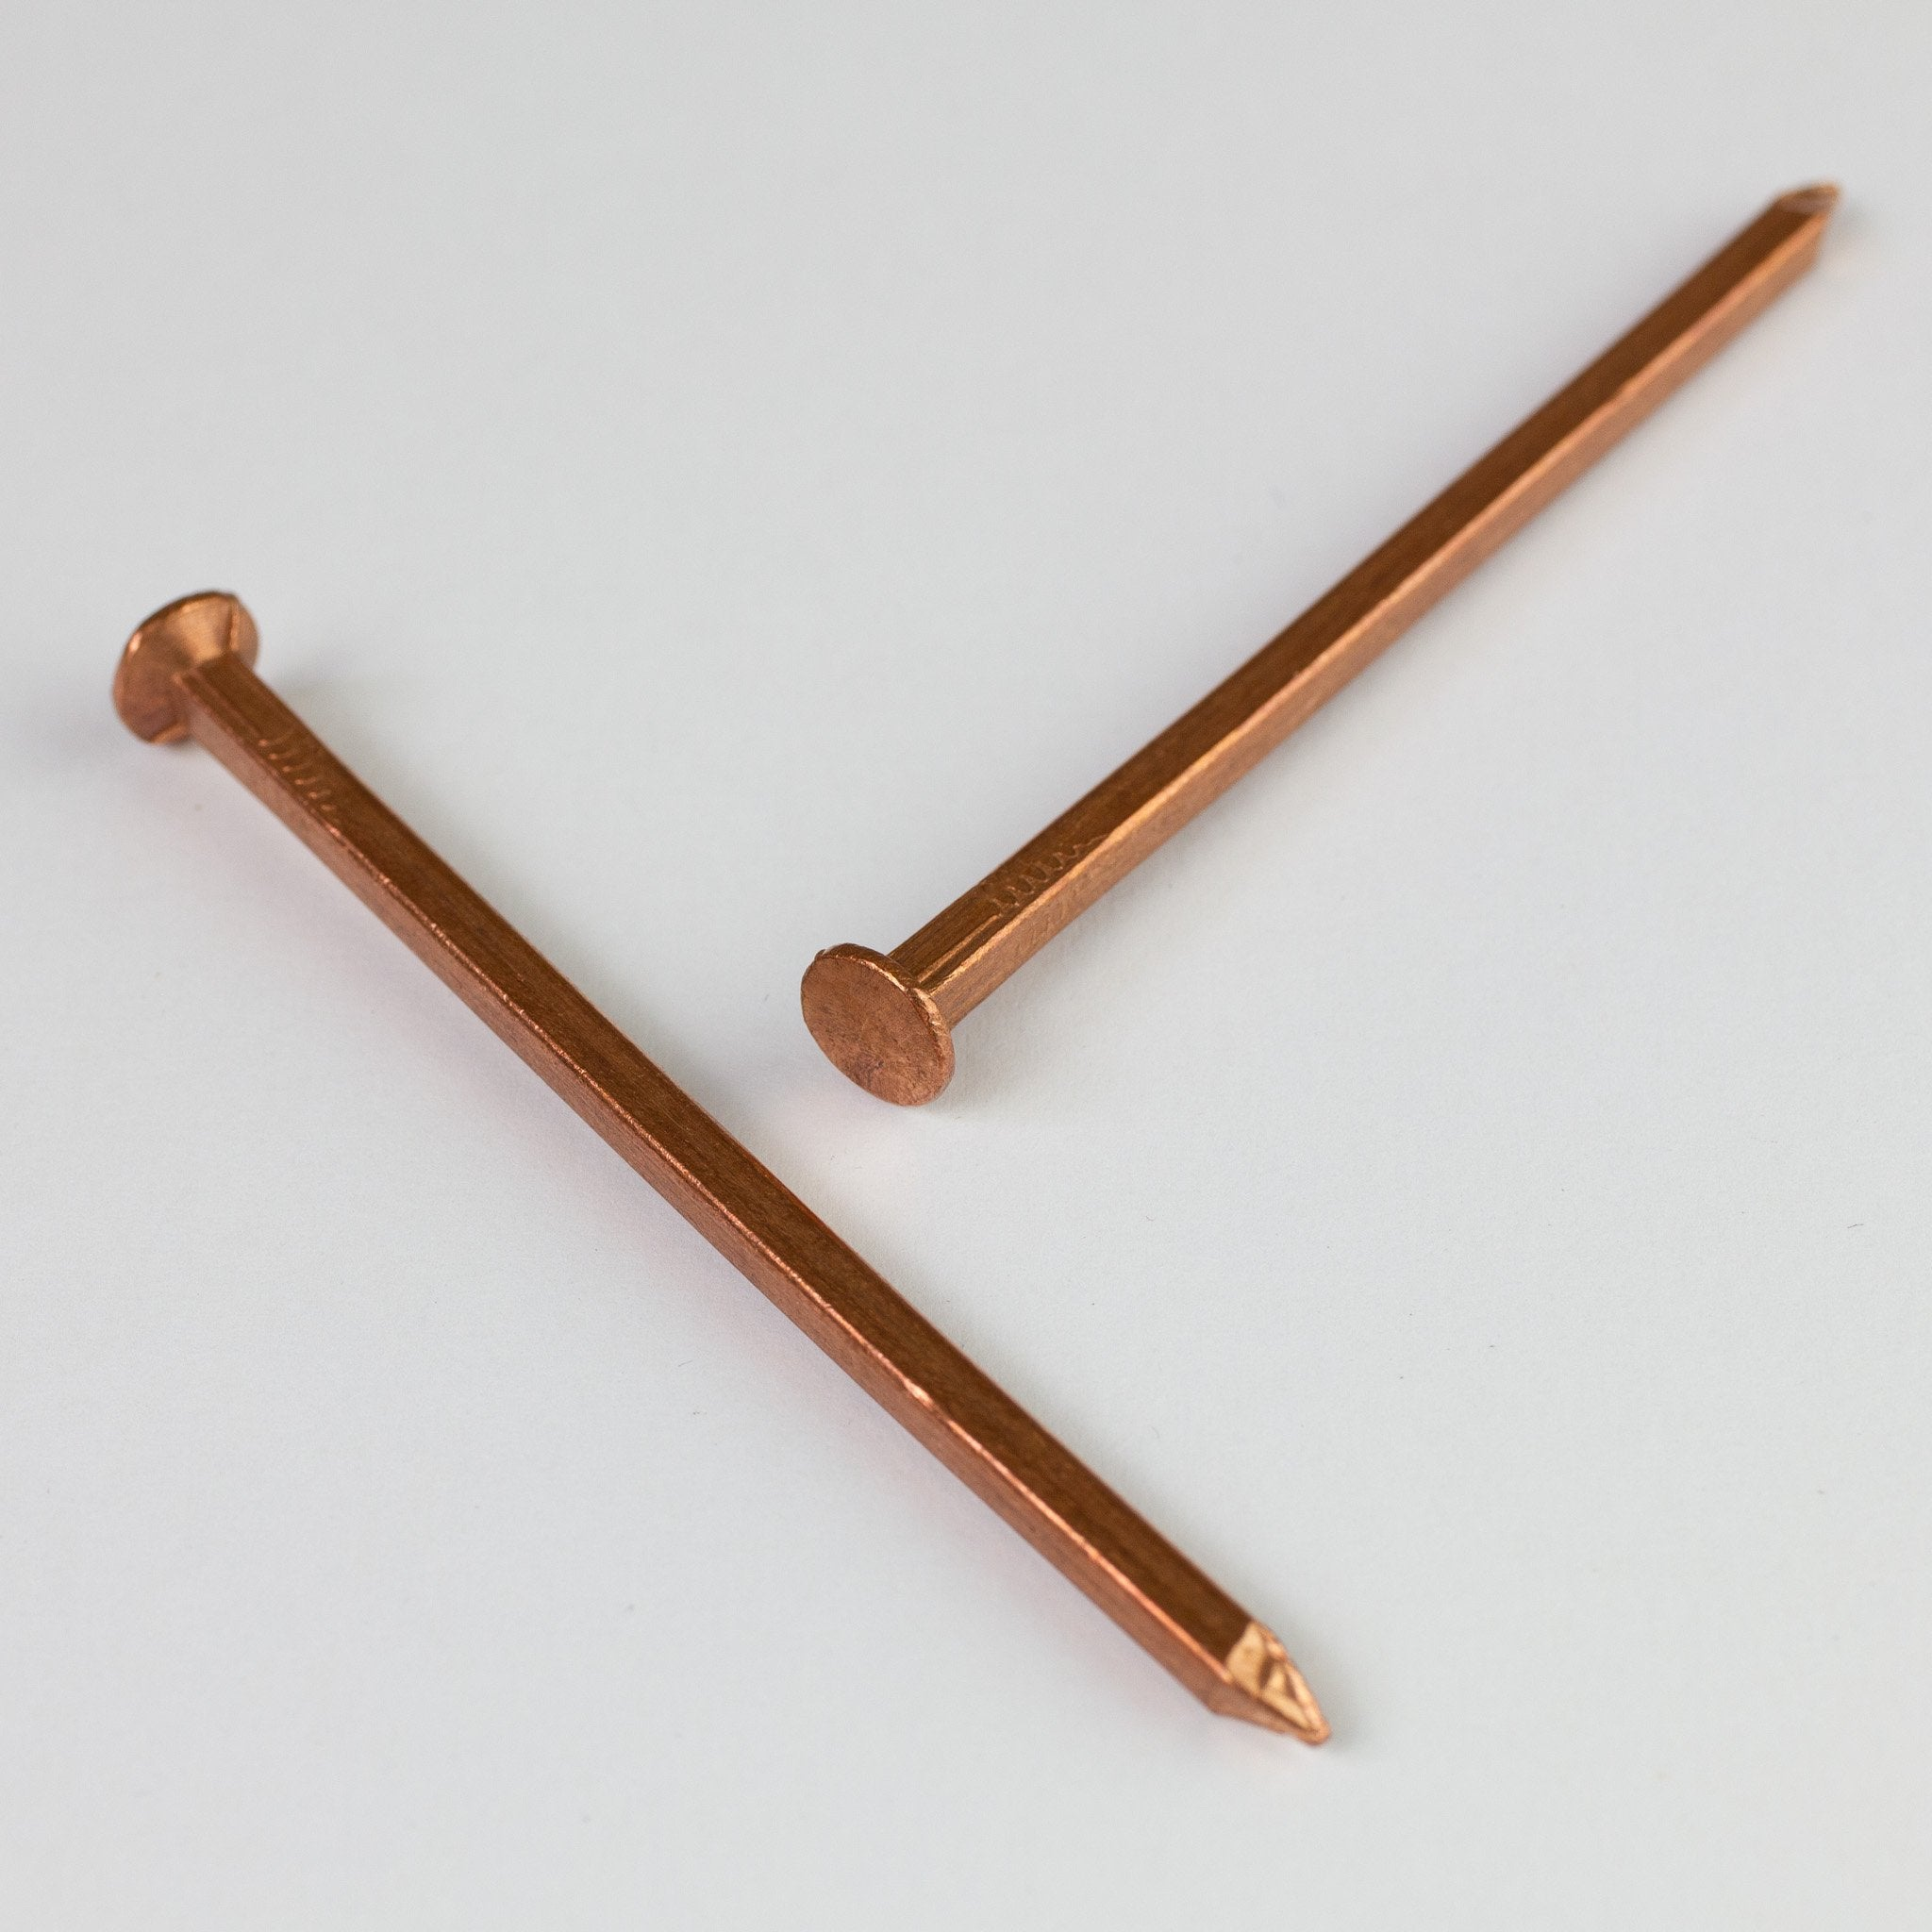 Copper Boat Nails-Countersunk Head - Arthur Beale